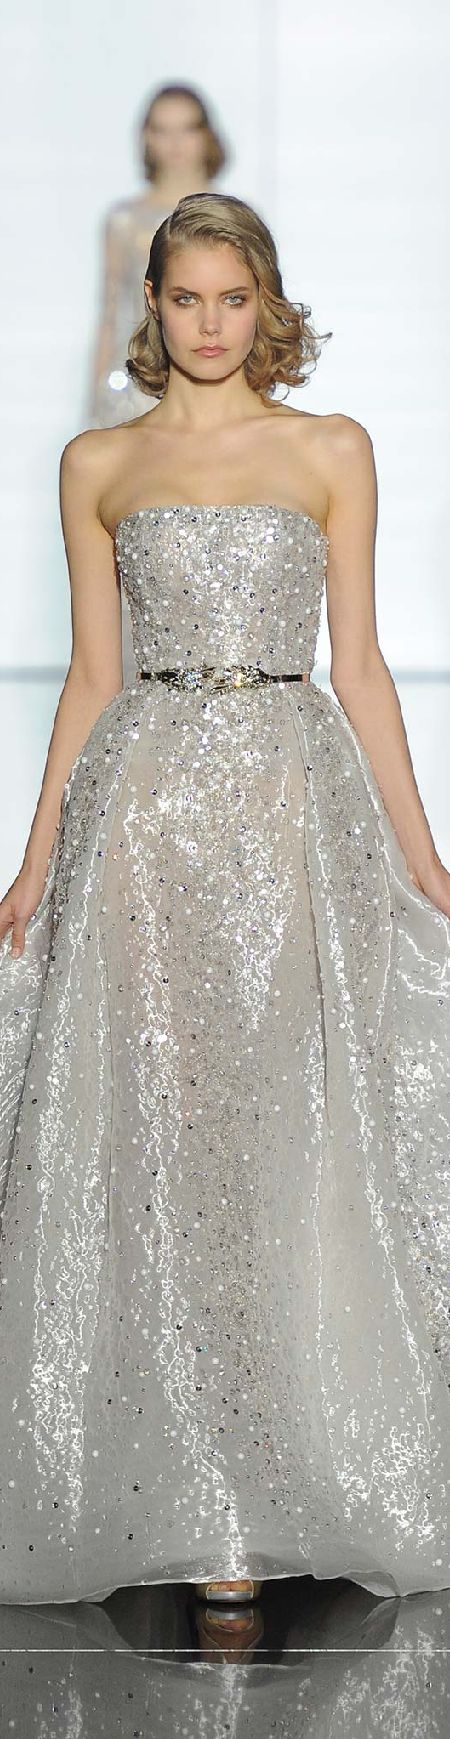 Zuhair Murad ~ Couture Silver Sequinned Strapless Gown 2015